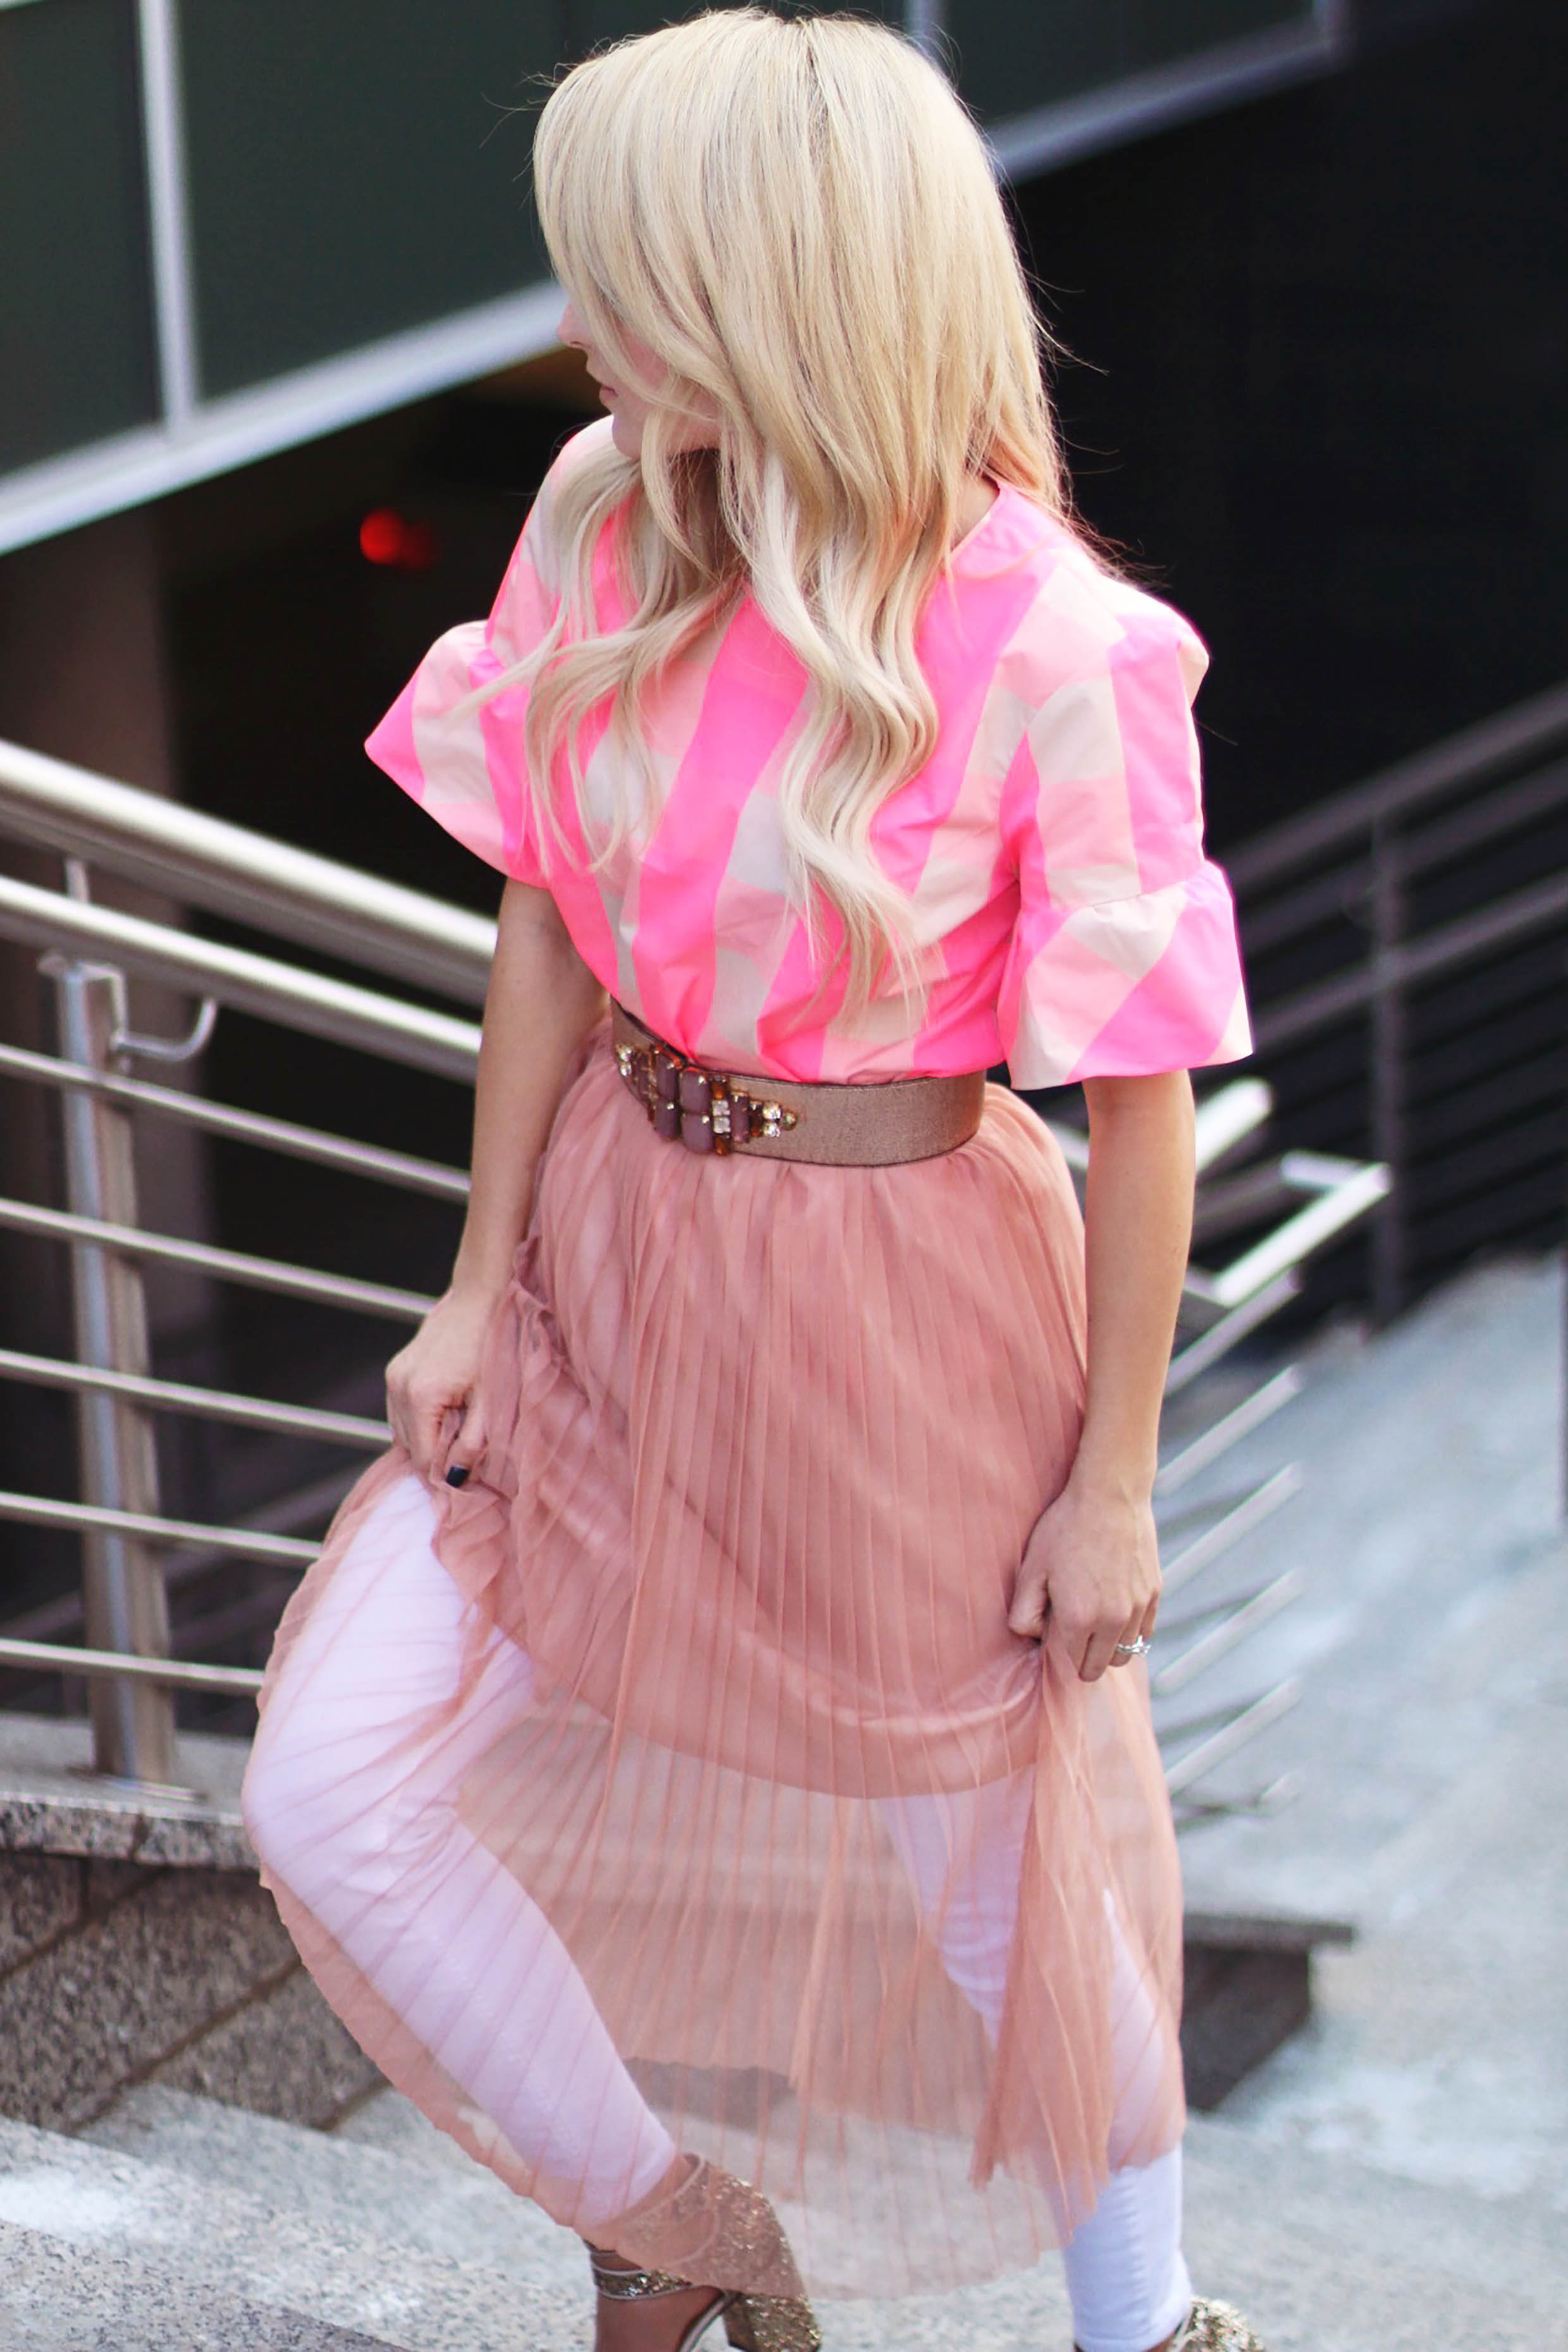 Alena Gidenko of modaprints.com shares tips on wearing a skirt with jeans